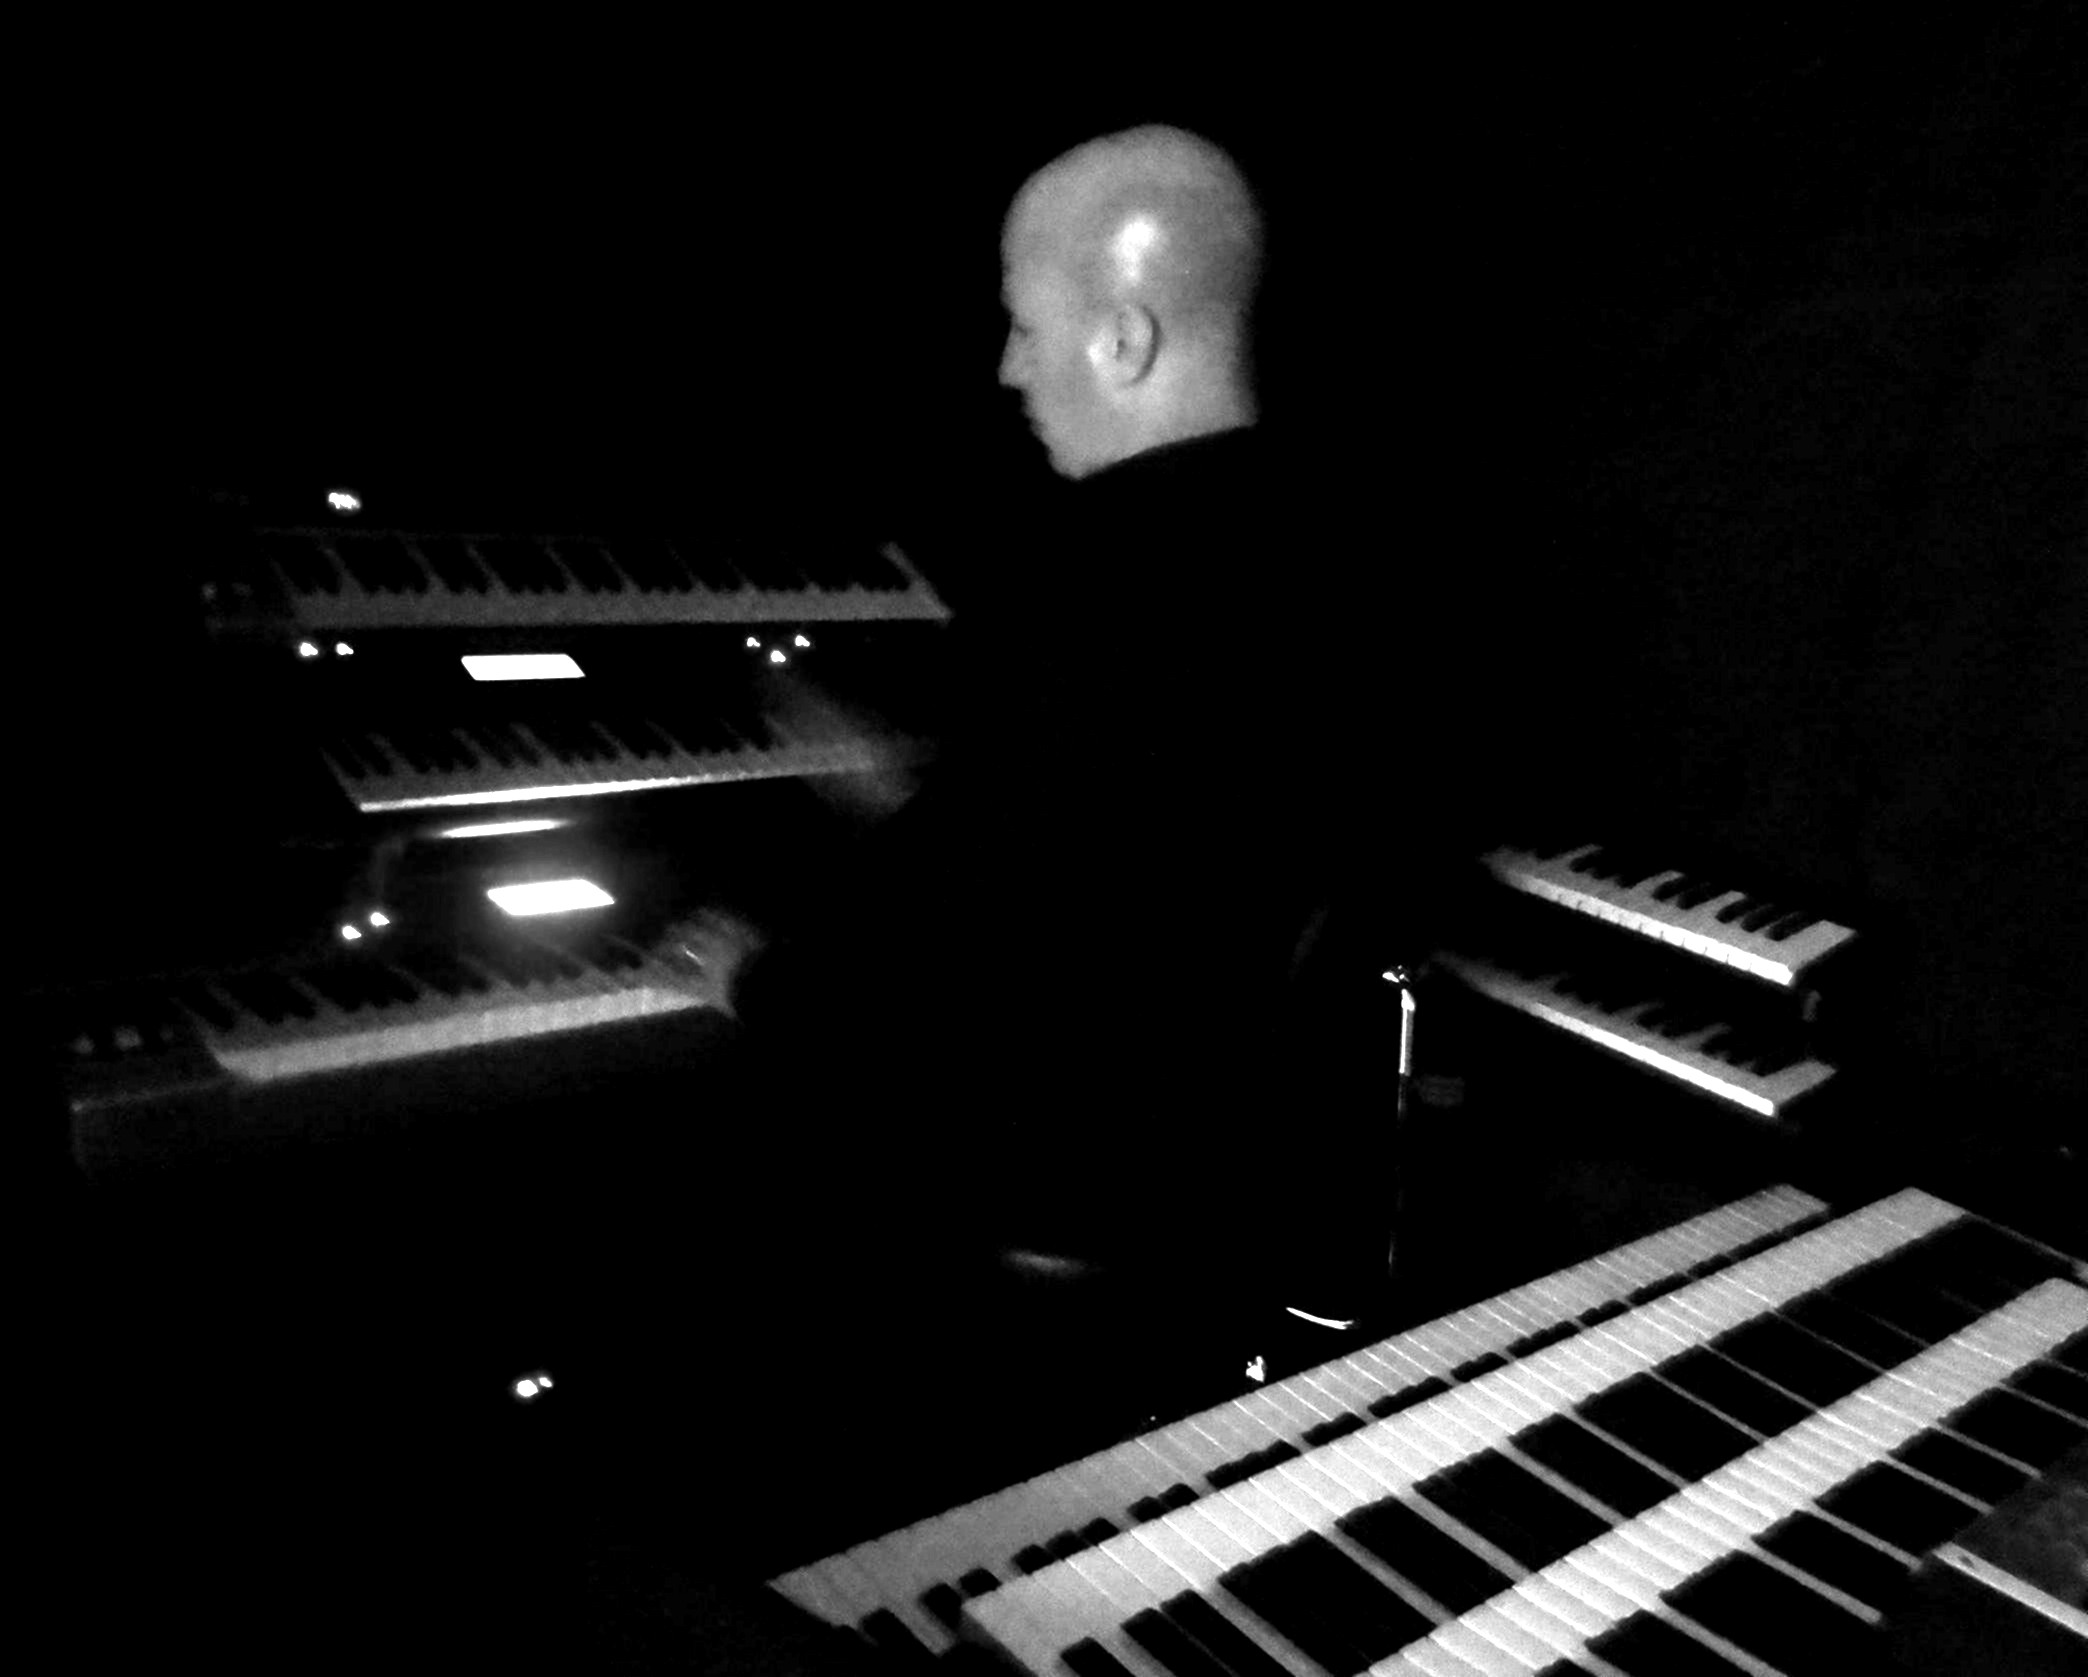 Allan Loucks live on keyboards 2013